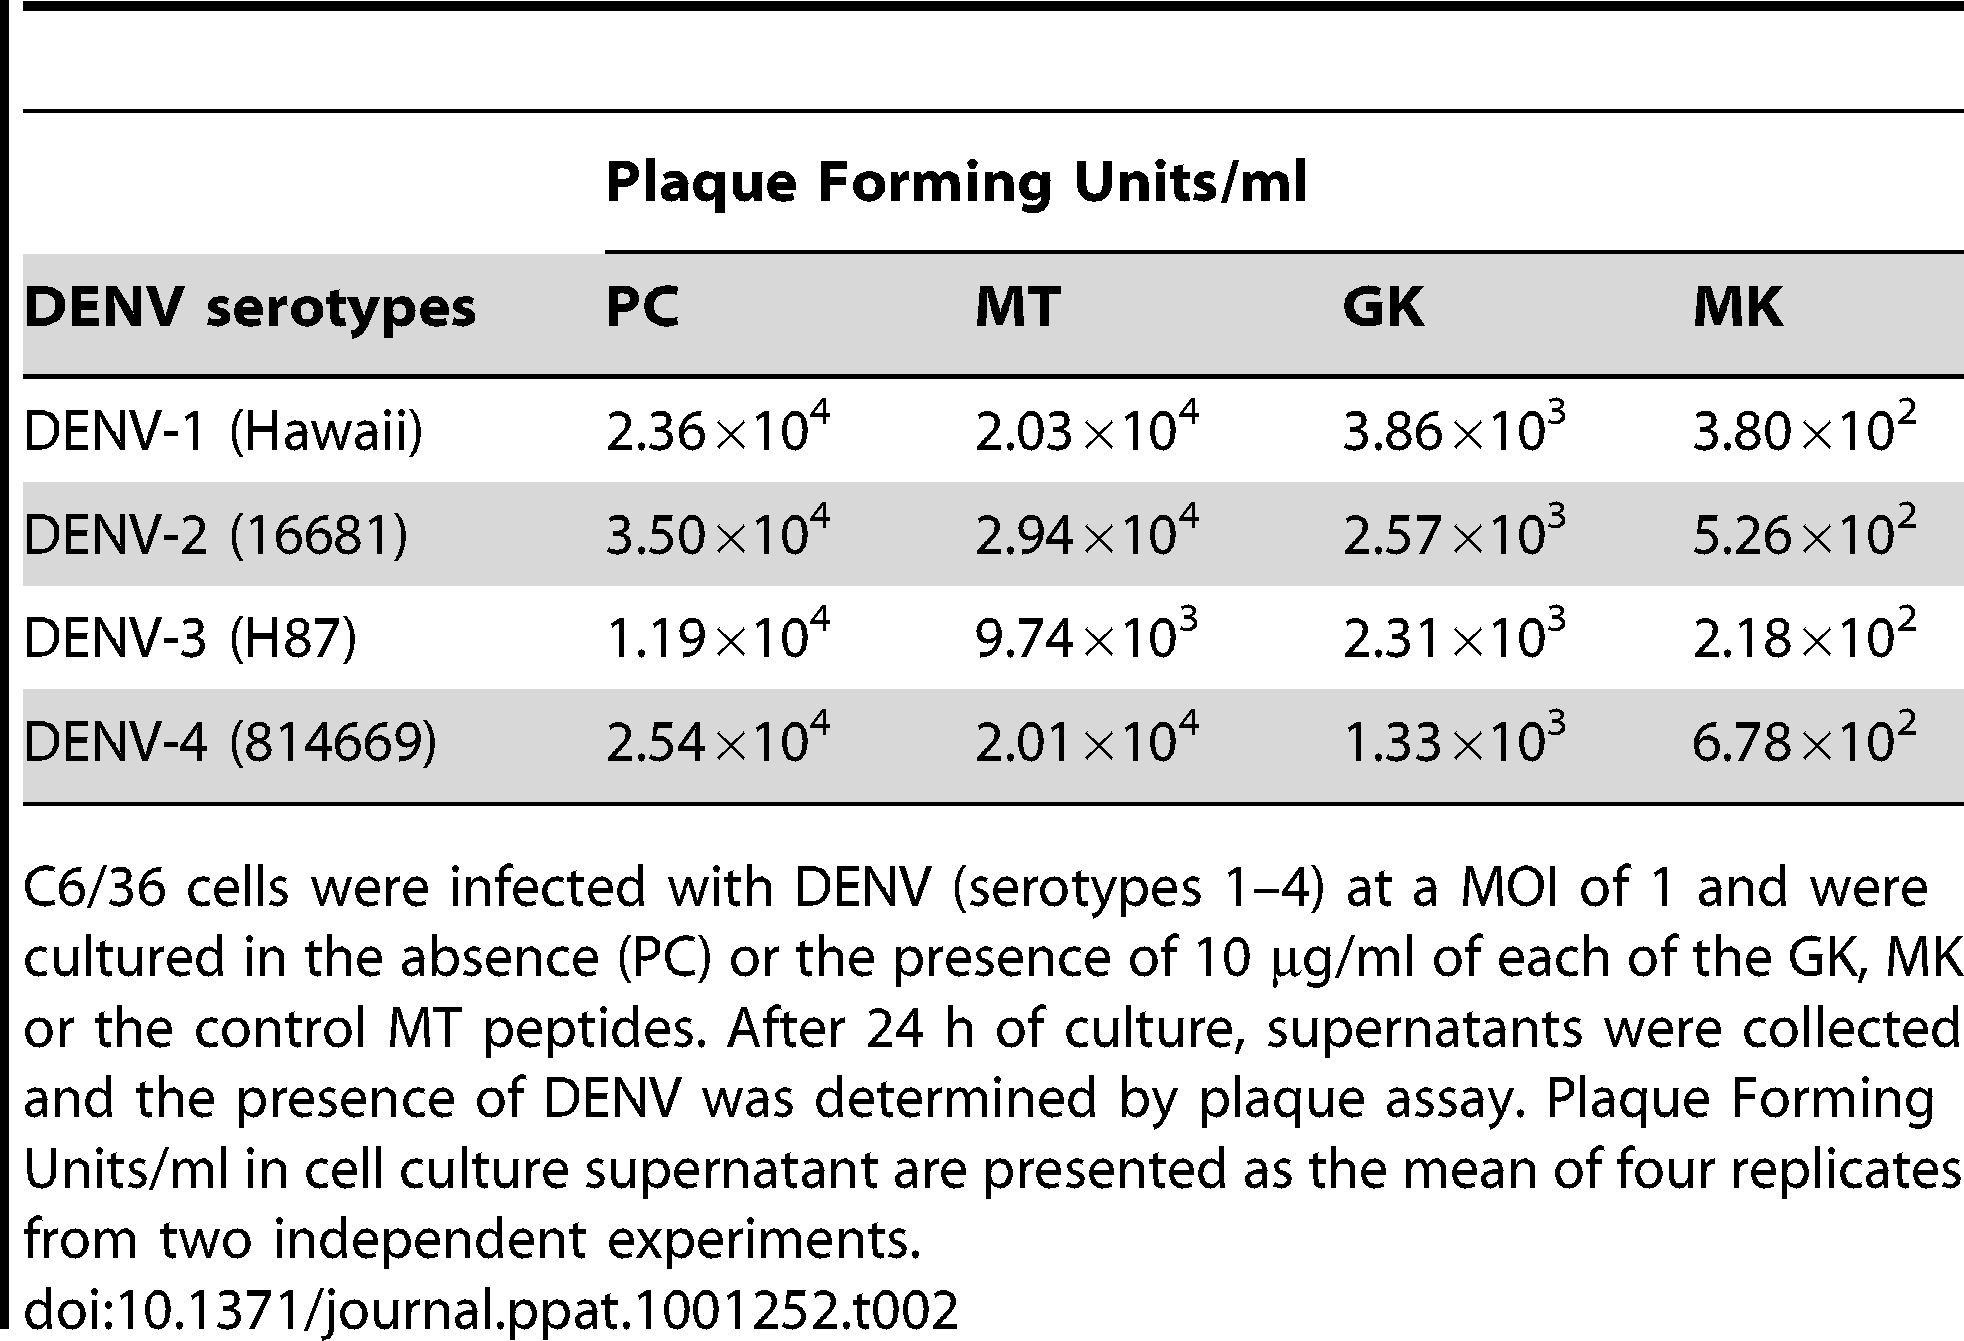 Effects of GK and MK peptides on DENV growth.